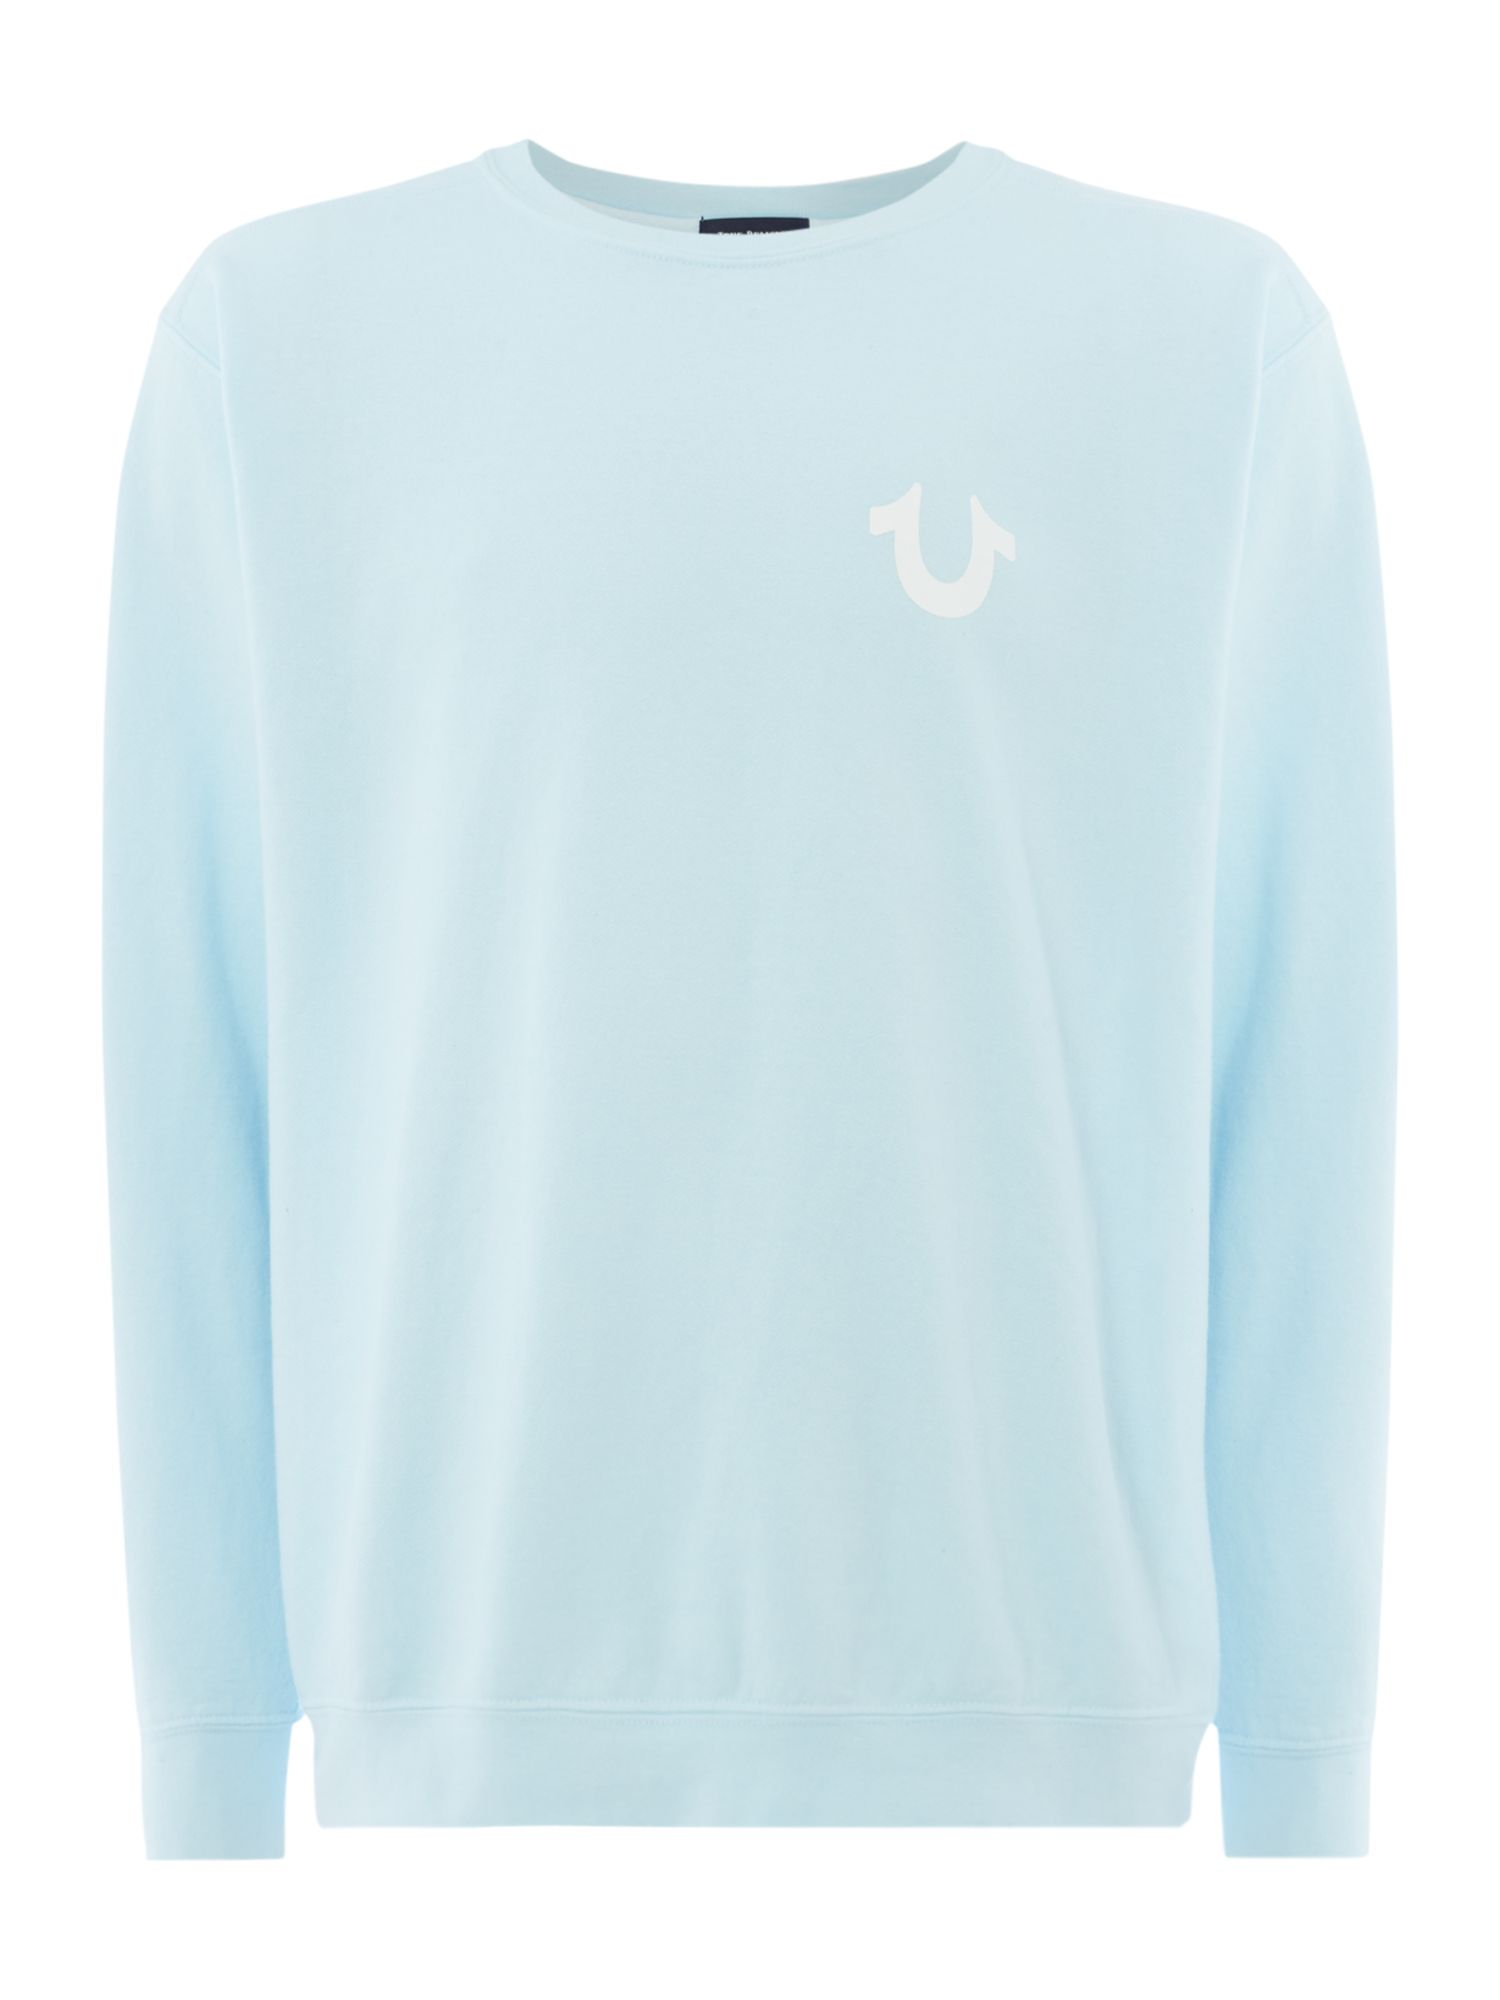 Men's True Religion Logo crew neck sweatshirt, Light Blue